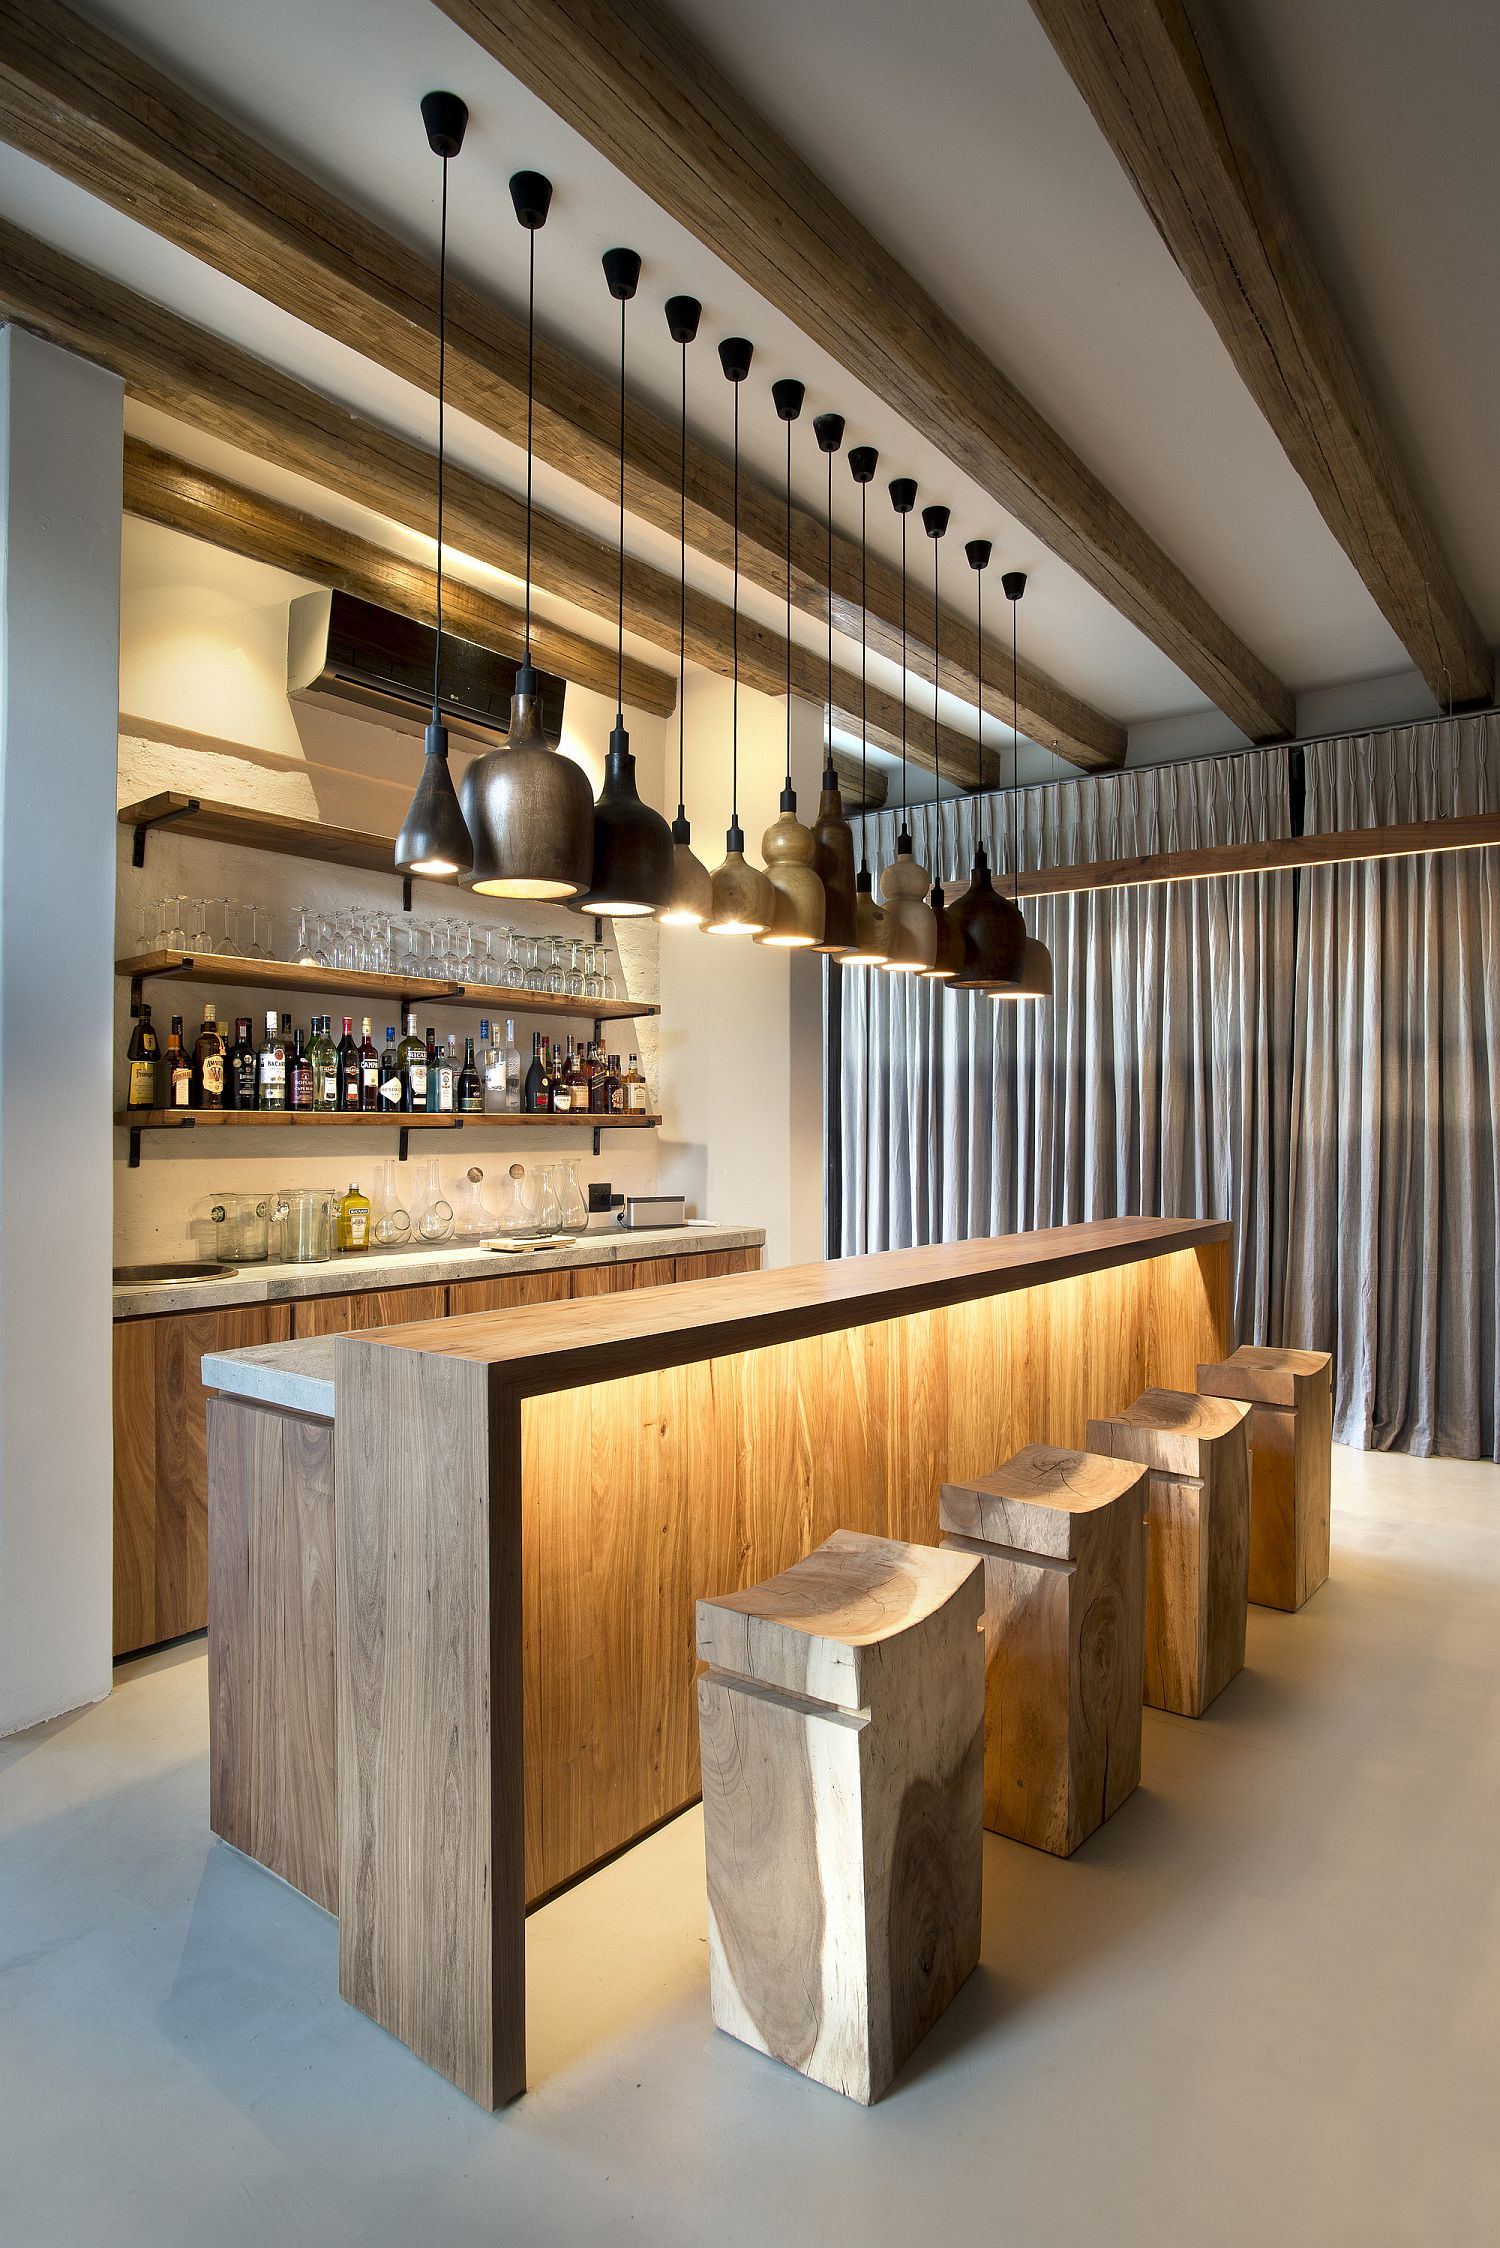 Gorgeous-use-of-diverse-pendant-light-for-the-home-bar